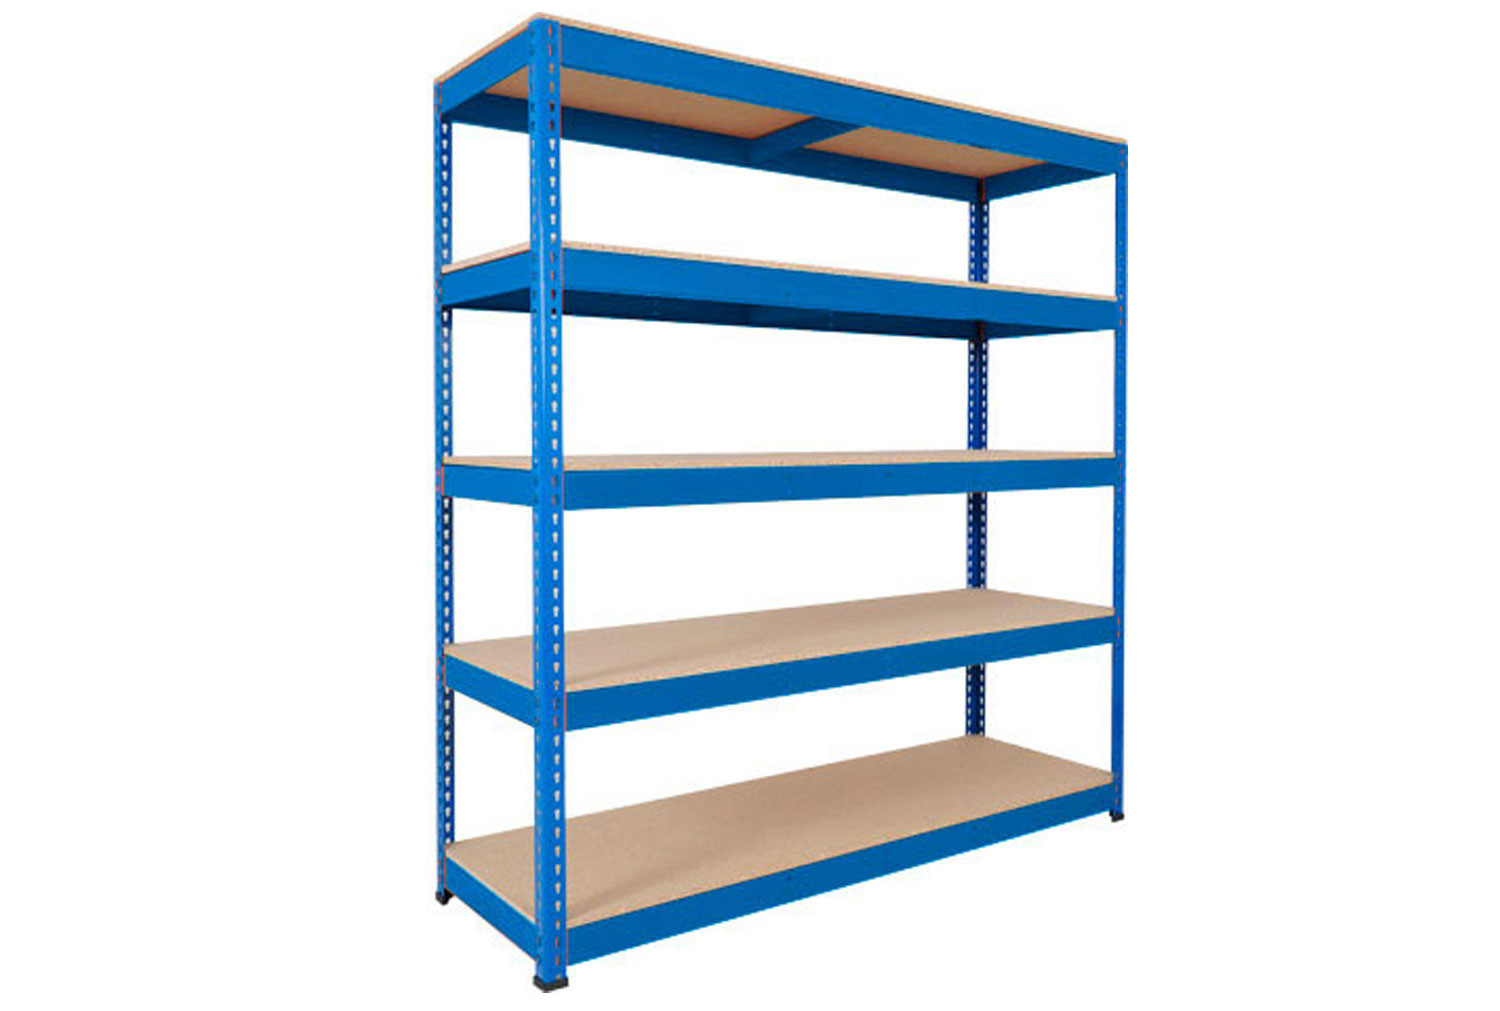 Rapid 1 Heavy Duty Shelving With 5 Chipboard Shelves 1525wx2440h (Blue)